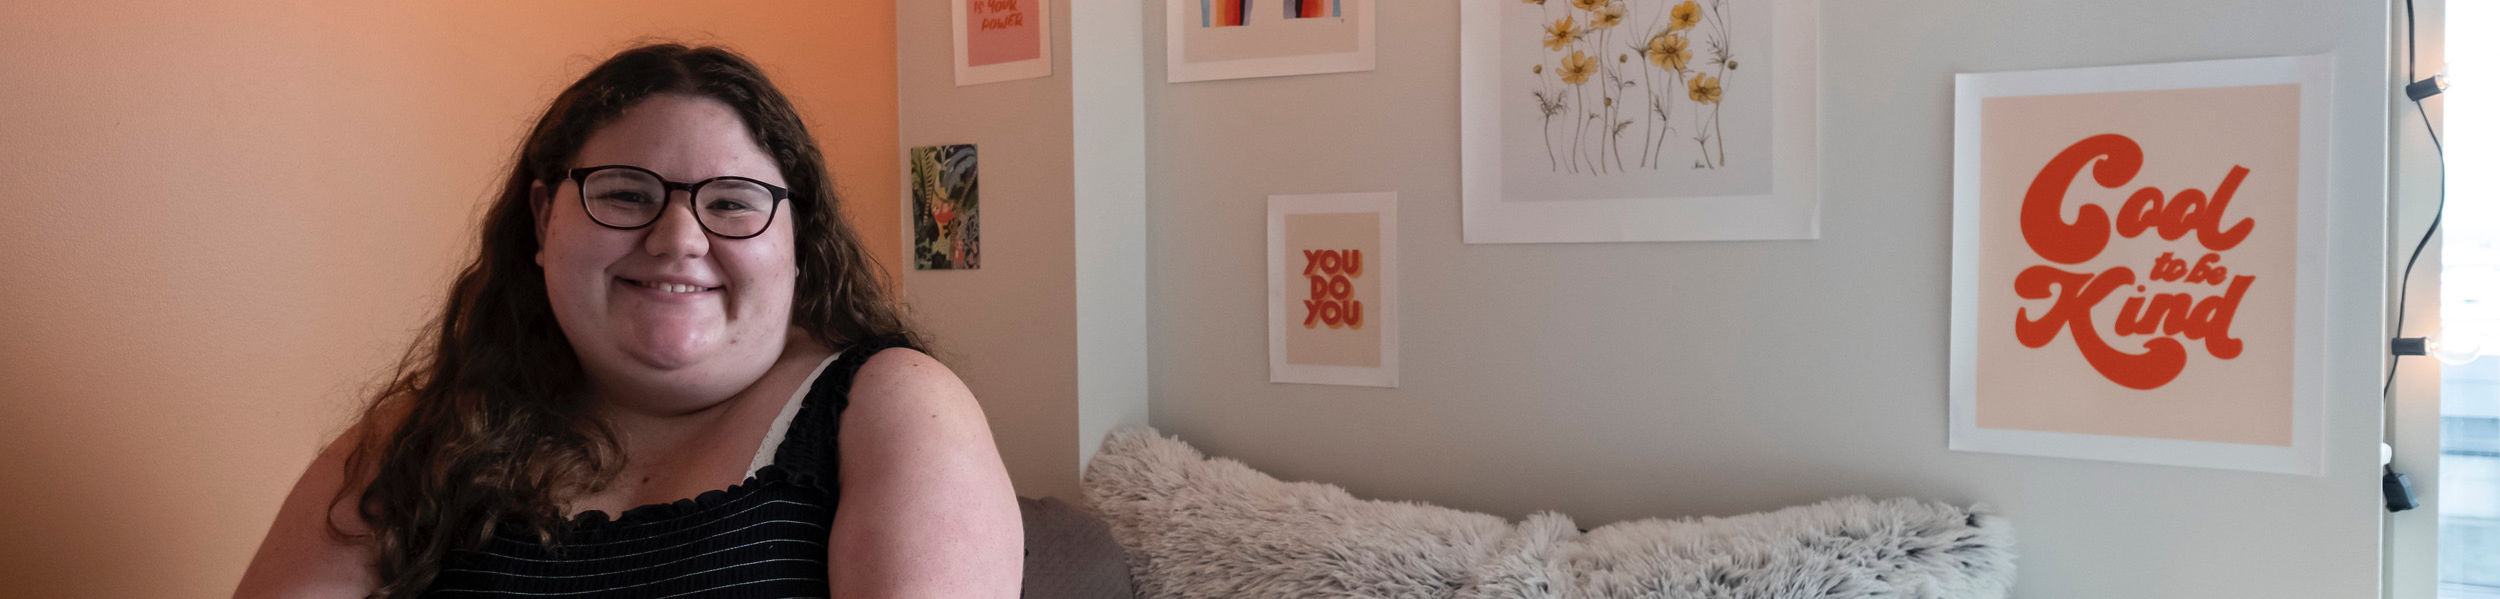 Student with peach-themed room